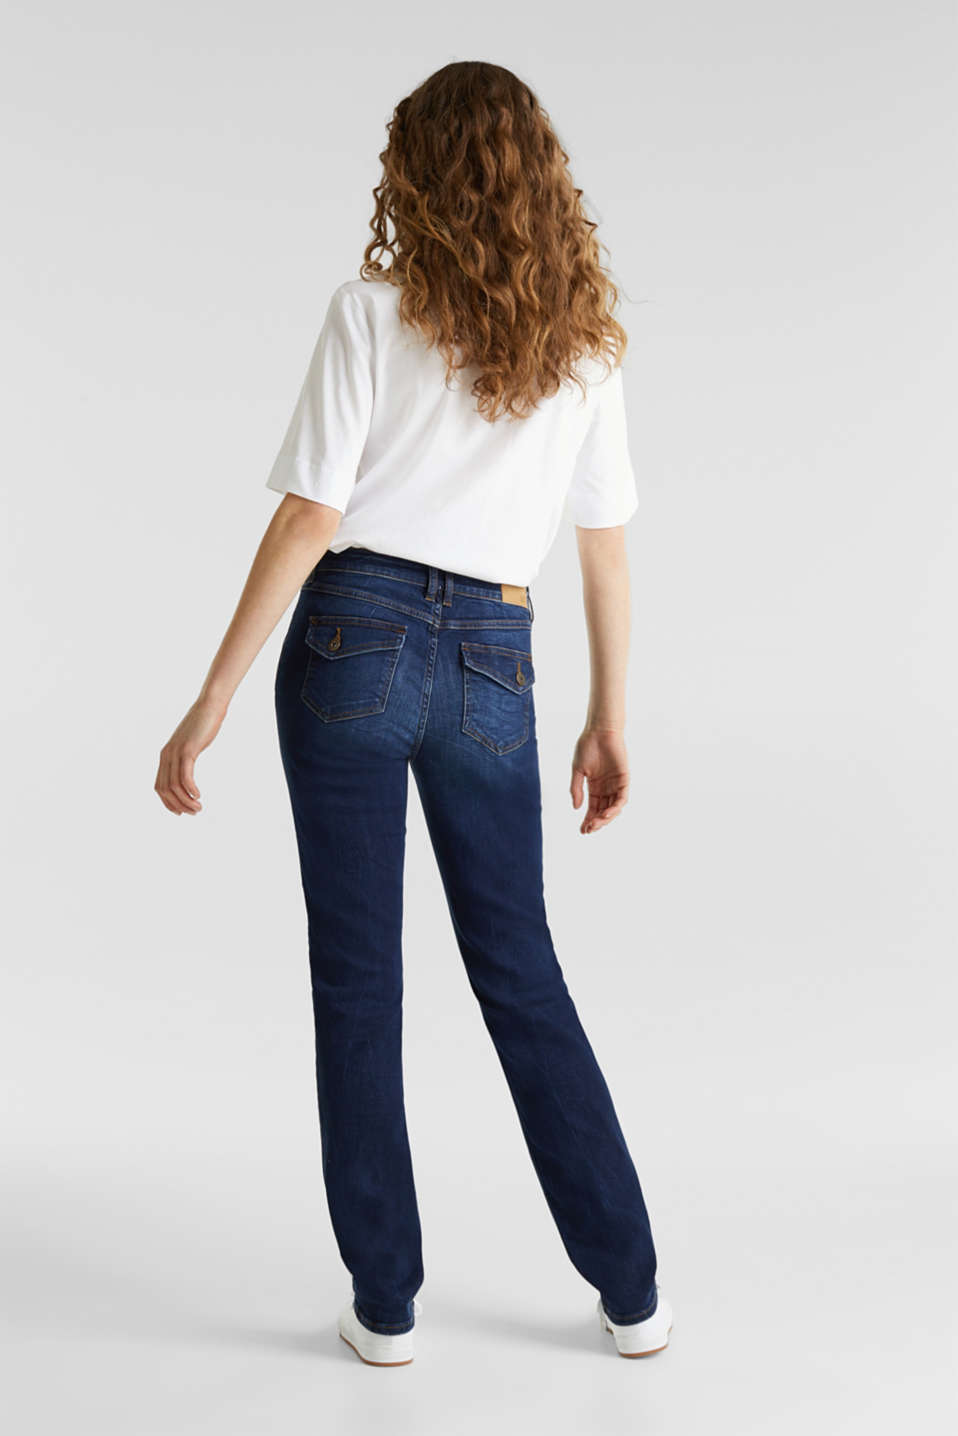 Stretch jeans with button-fastening flap pockets, BLUE DARK WASH, detail image number 3